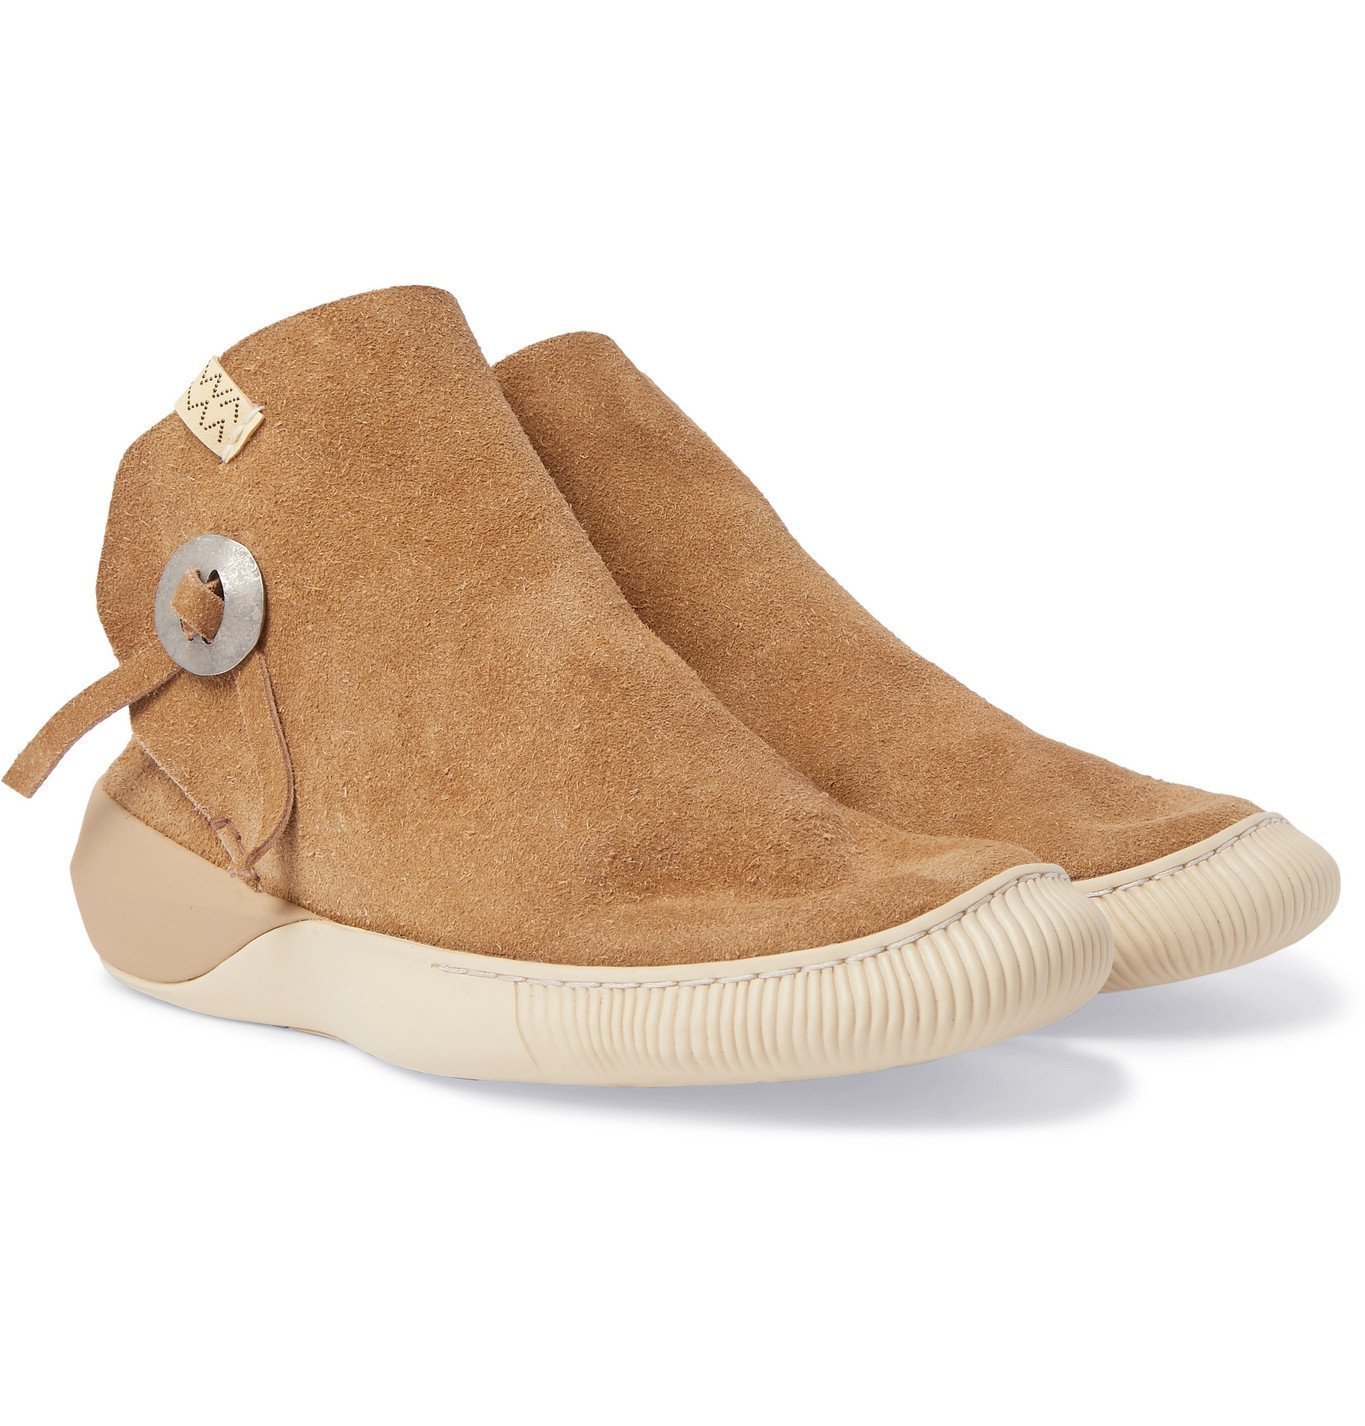 Photo: visvim - Gila Moc Mid II Suede High-Top Sneakers - Brown